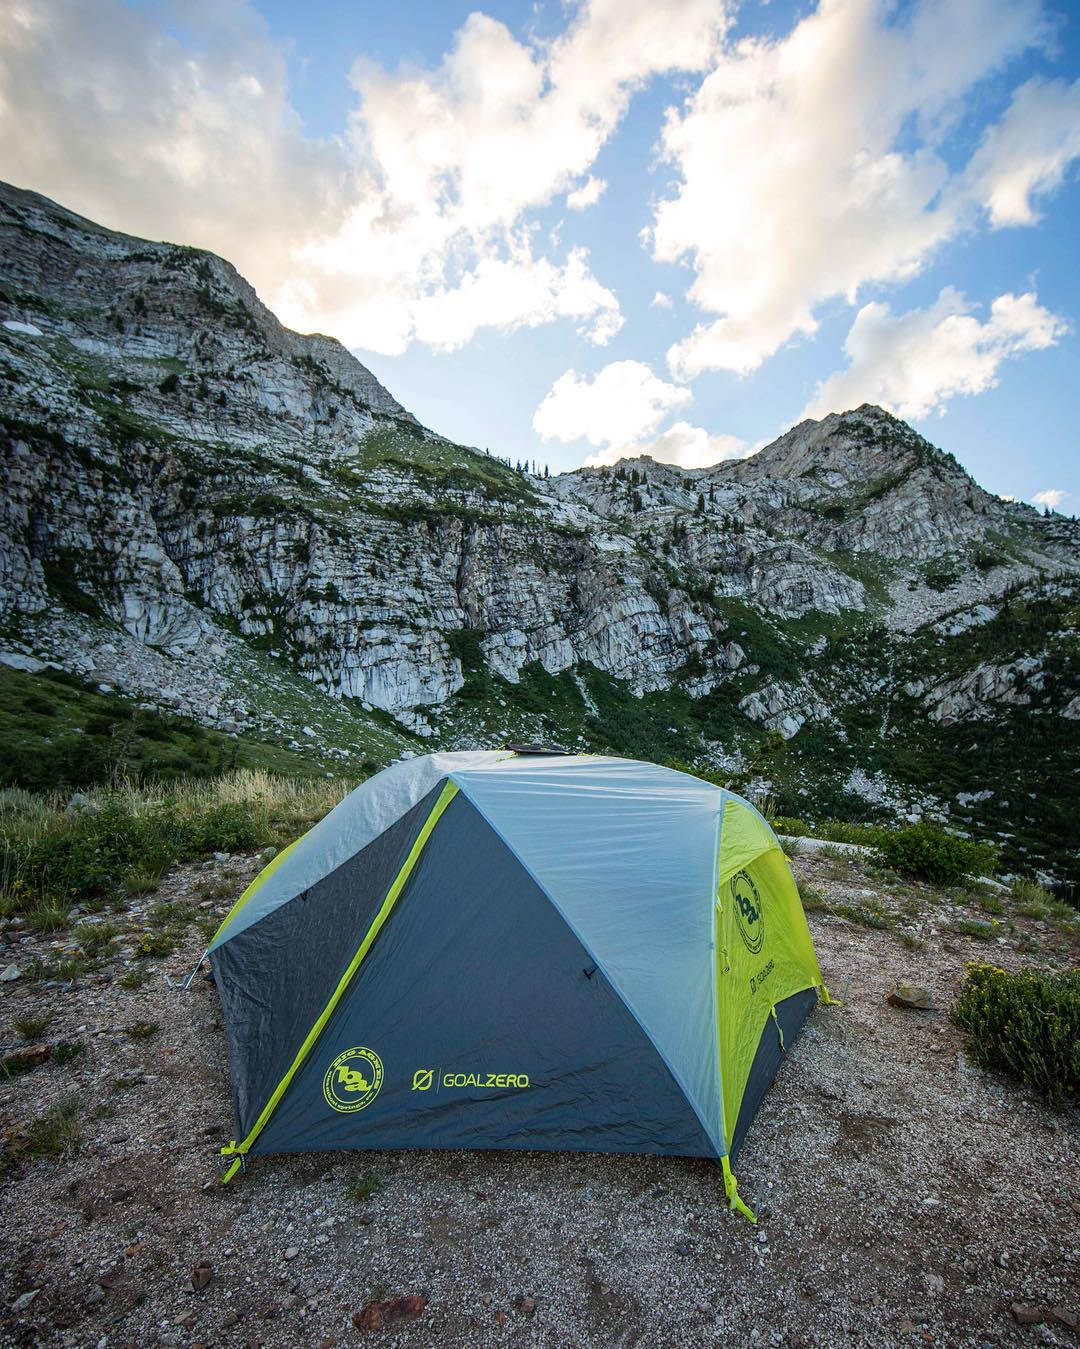 Meet the Krumholtz UL2 Solar Ready™ tent from @bigagnes_ Seamlessly integrated into the Krumholtz UL2 tent is water resistant Goal Zero Technology which includes a Nomad 7 Solar Panel, fan, lantern, and Flip 20 battery. Charge your USB/12V devices or...